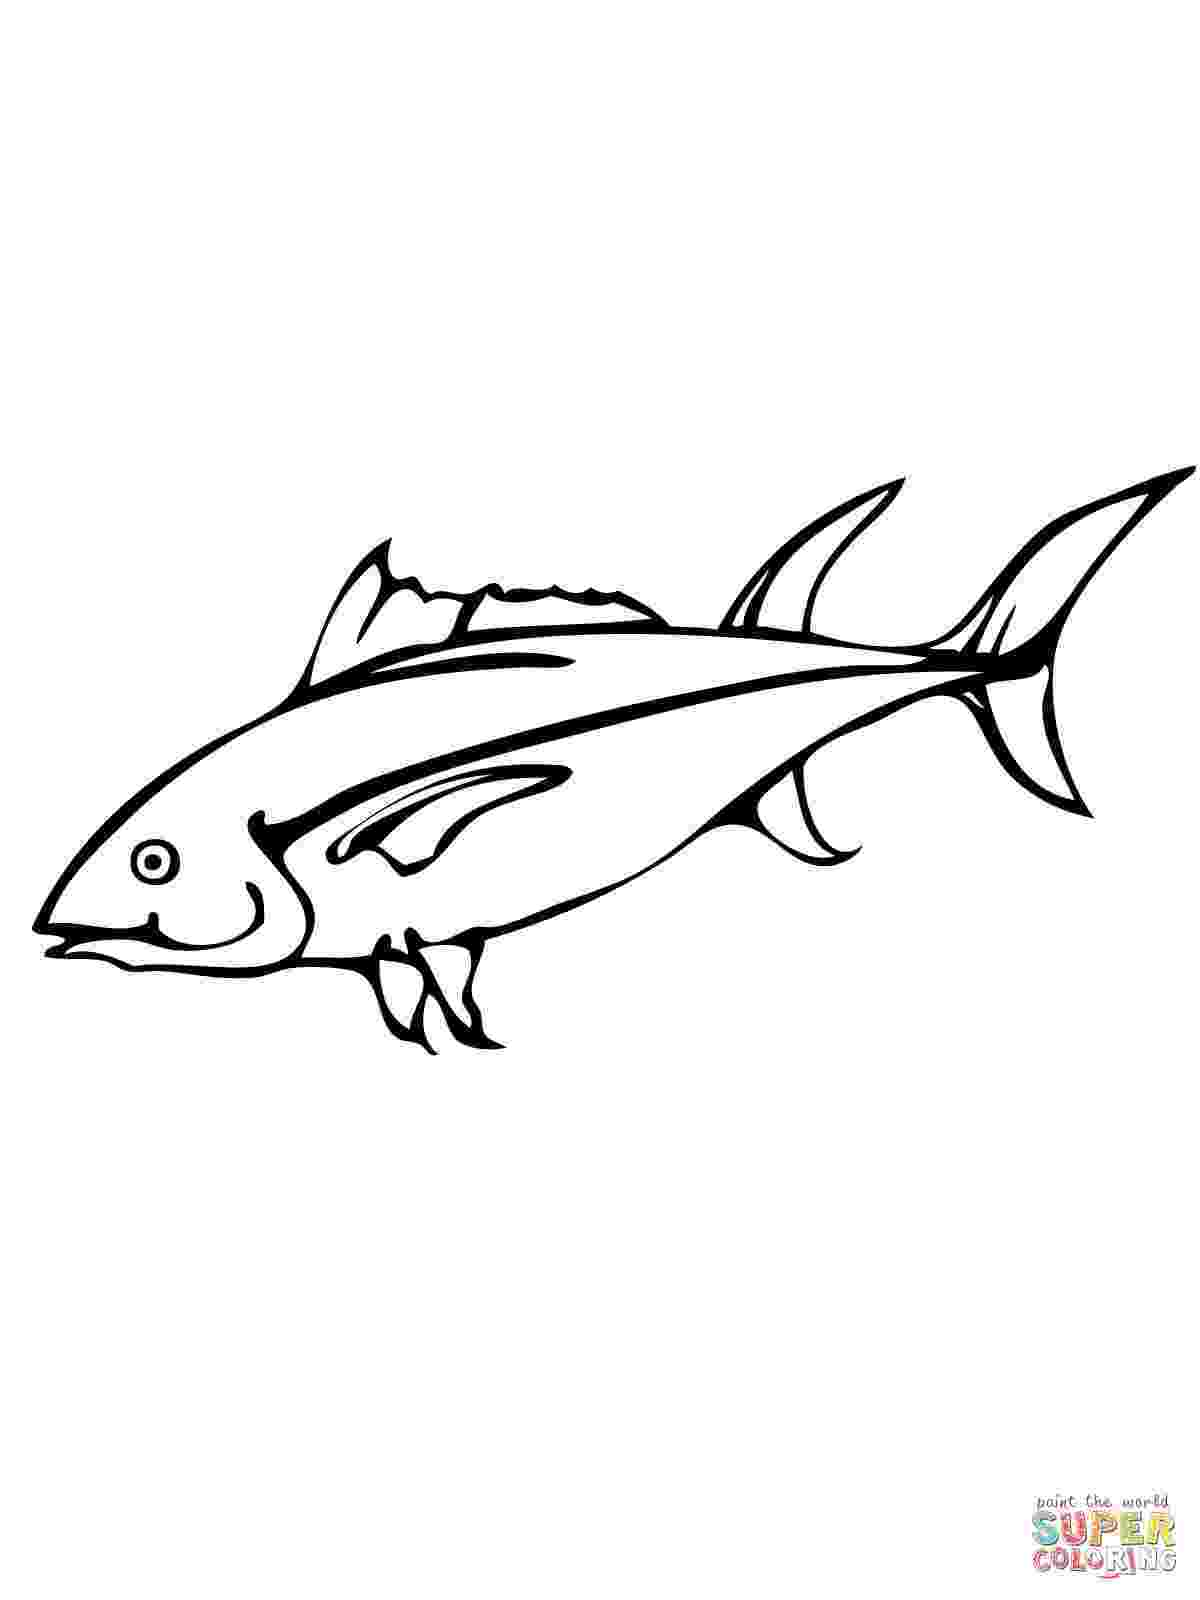 salmon coloring pages salmon drawing at getdrawingscom free for personal use salmon coloring pages